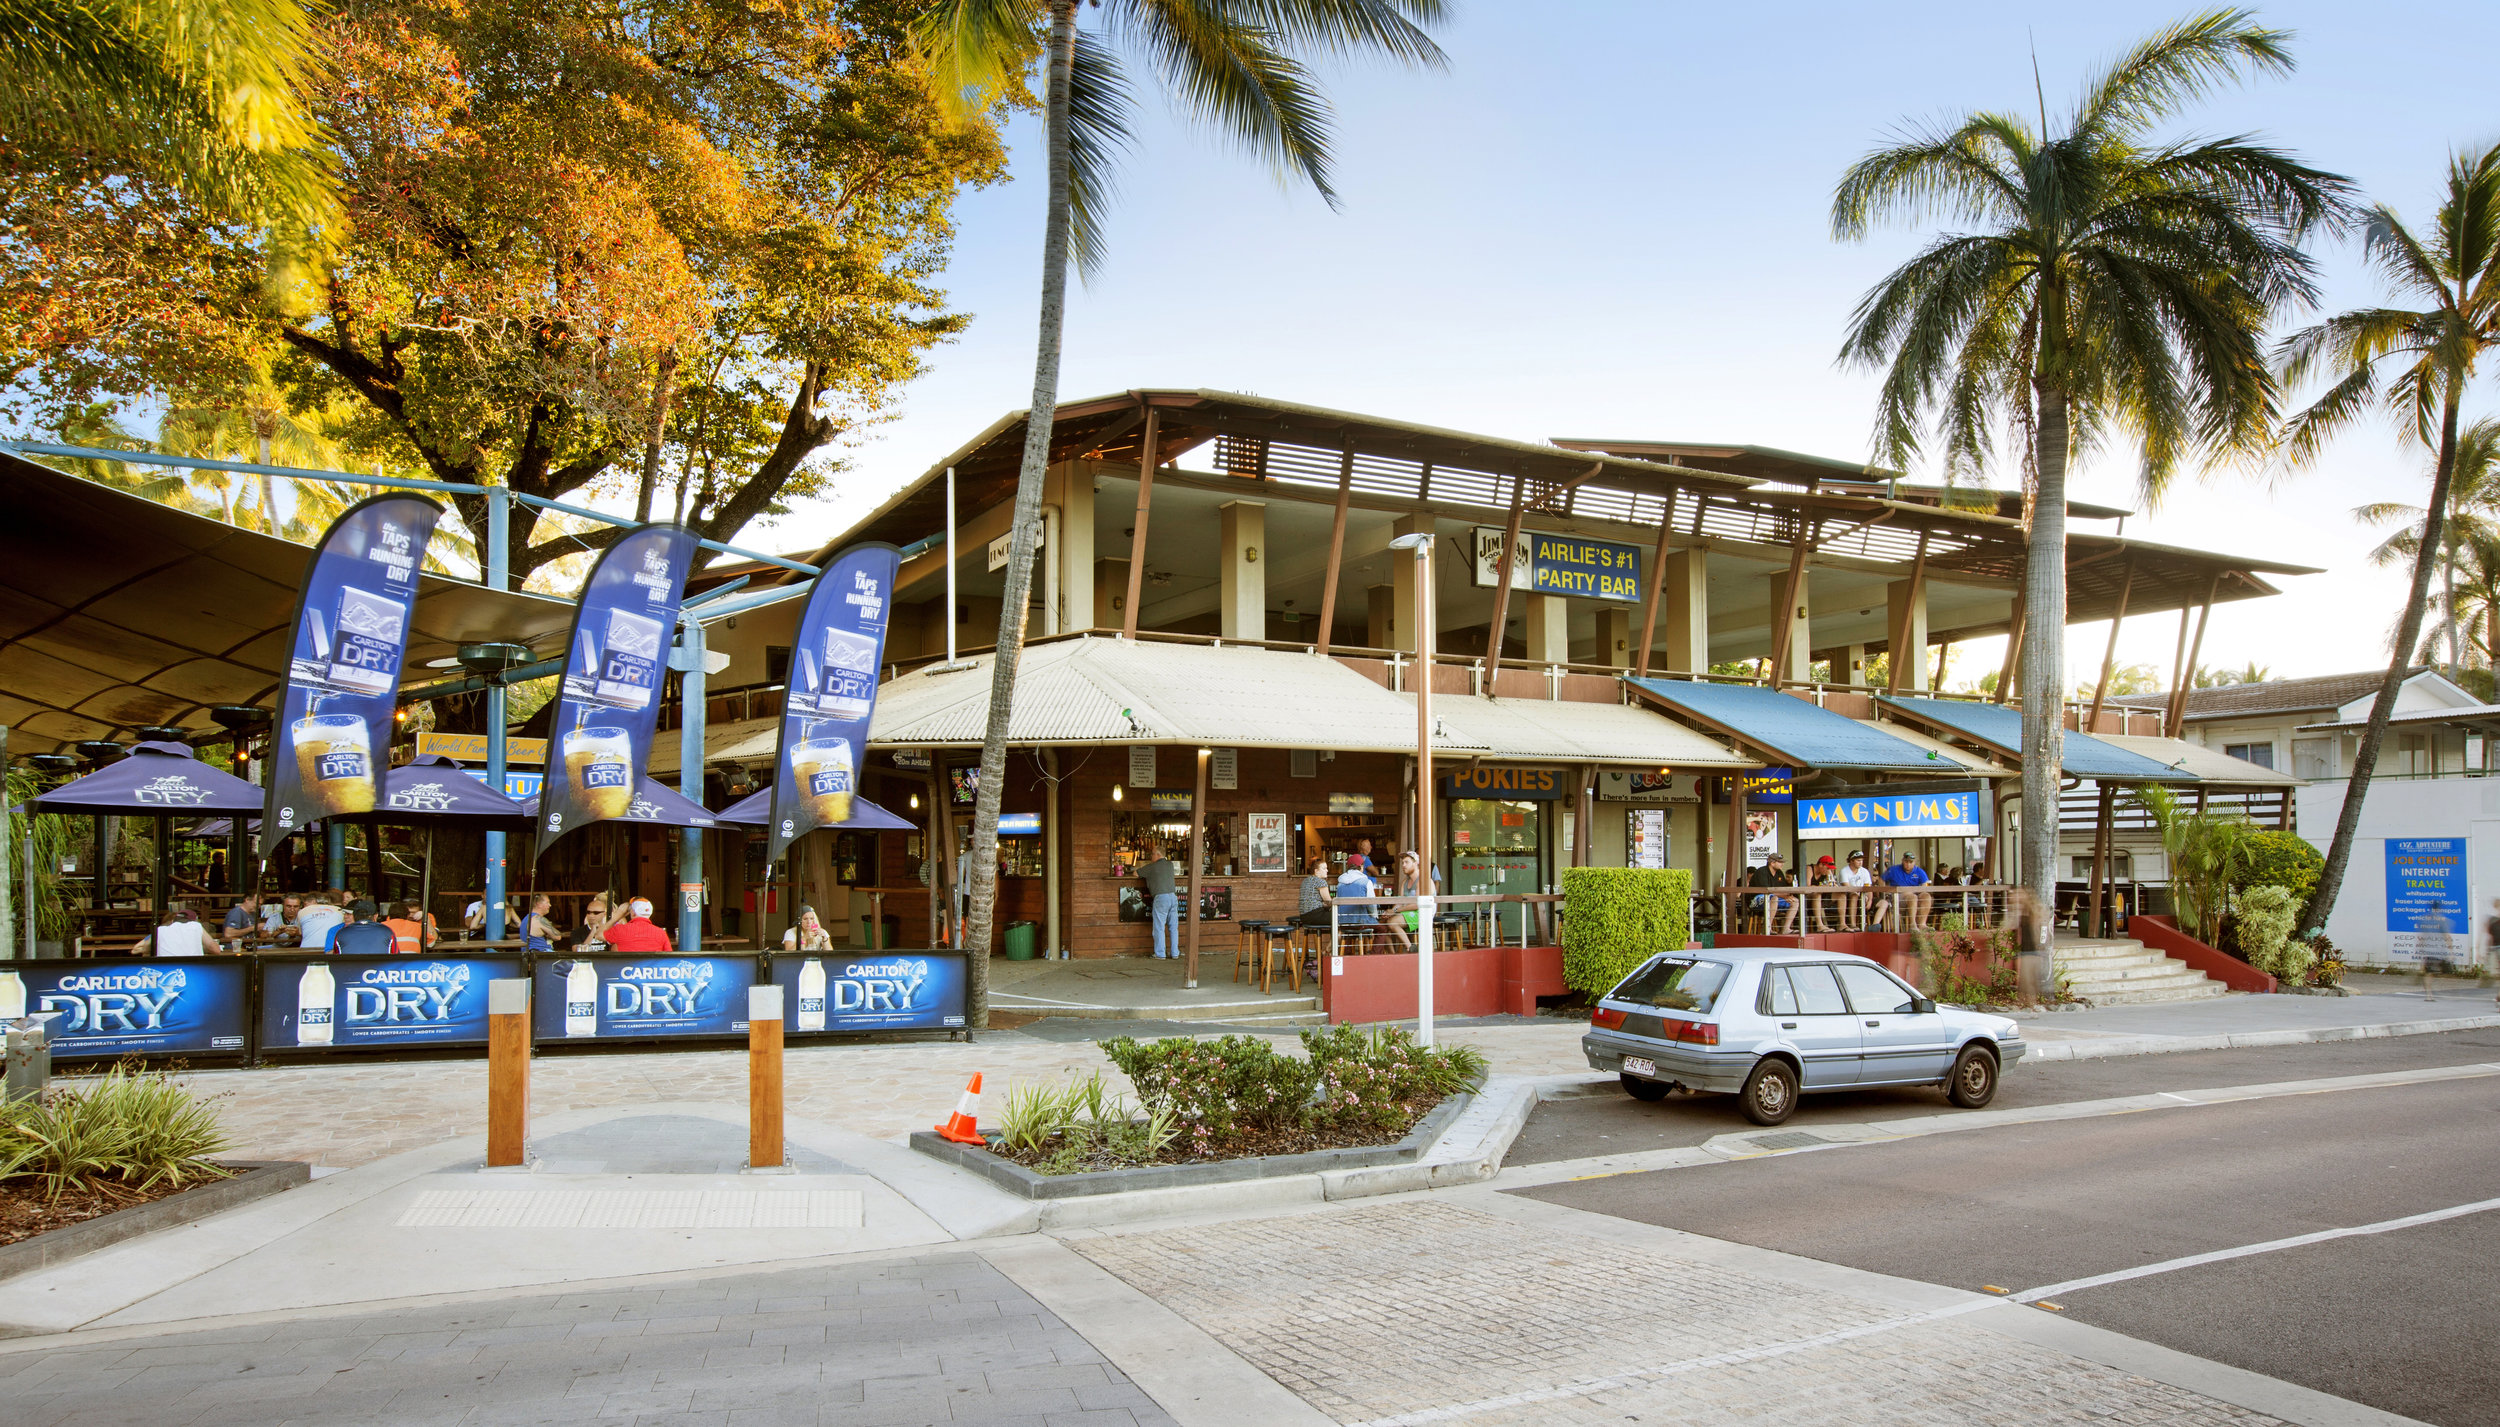 Magnums Hotel, Airlie Beach, QLD